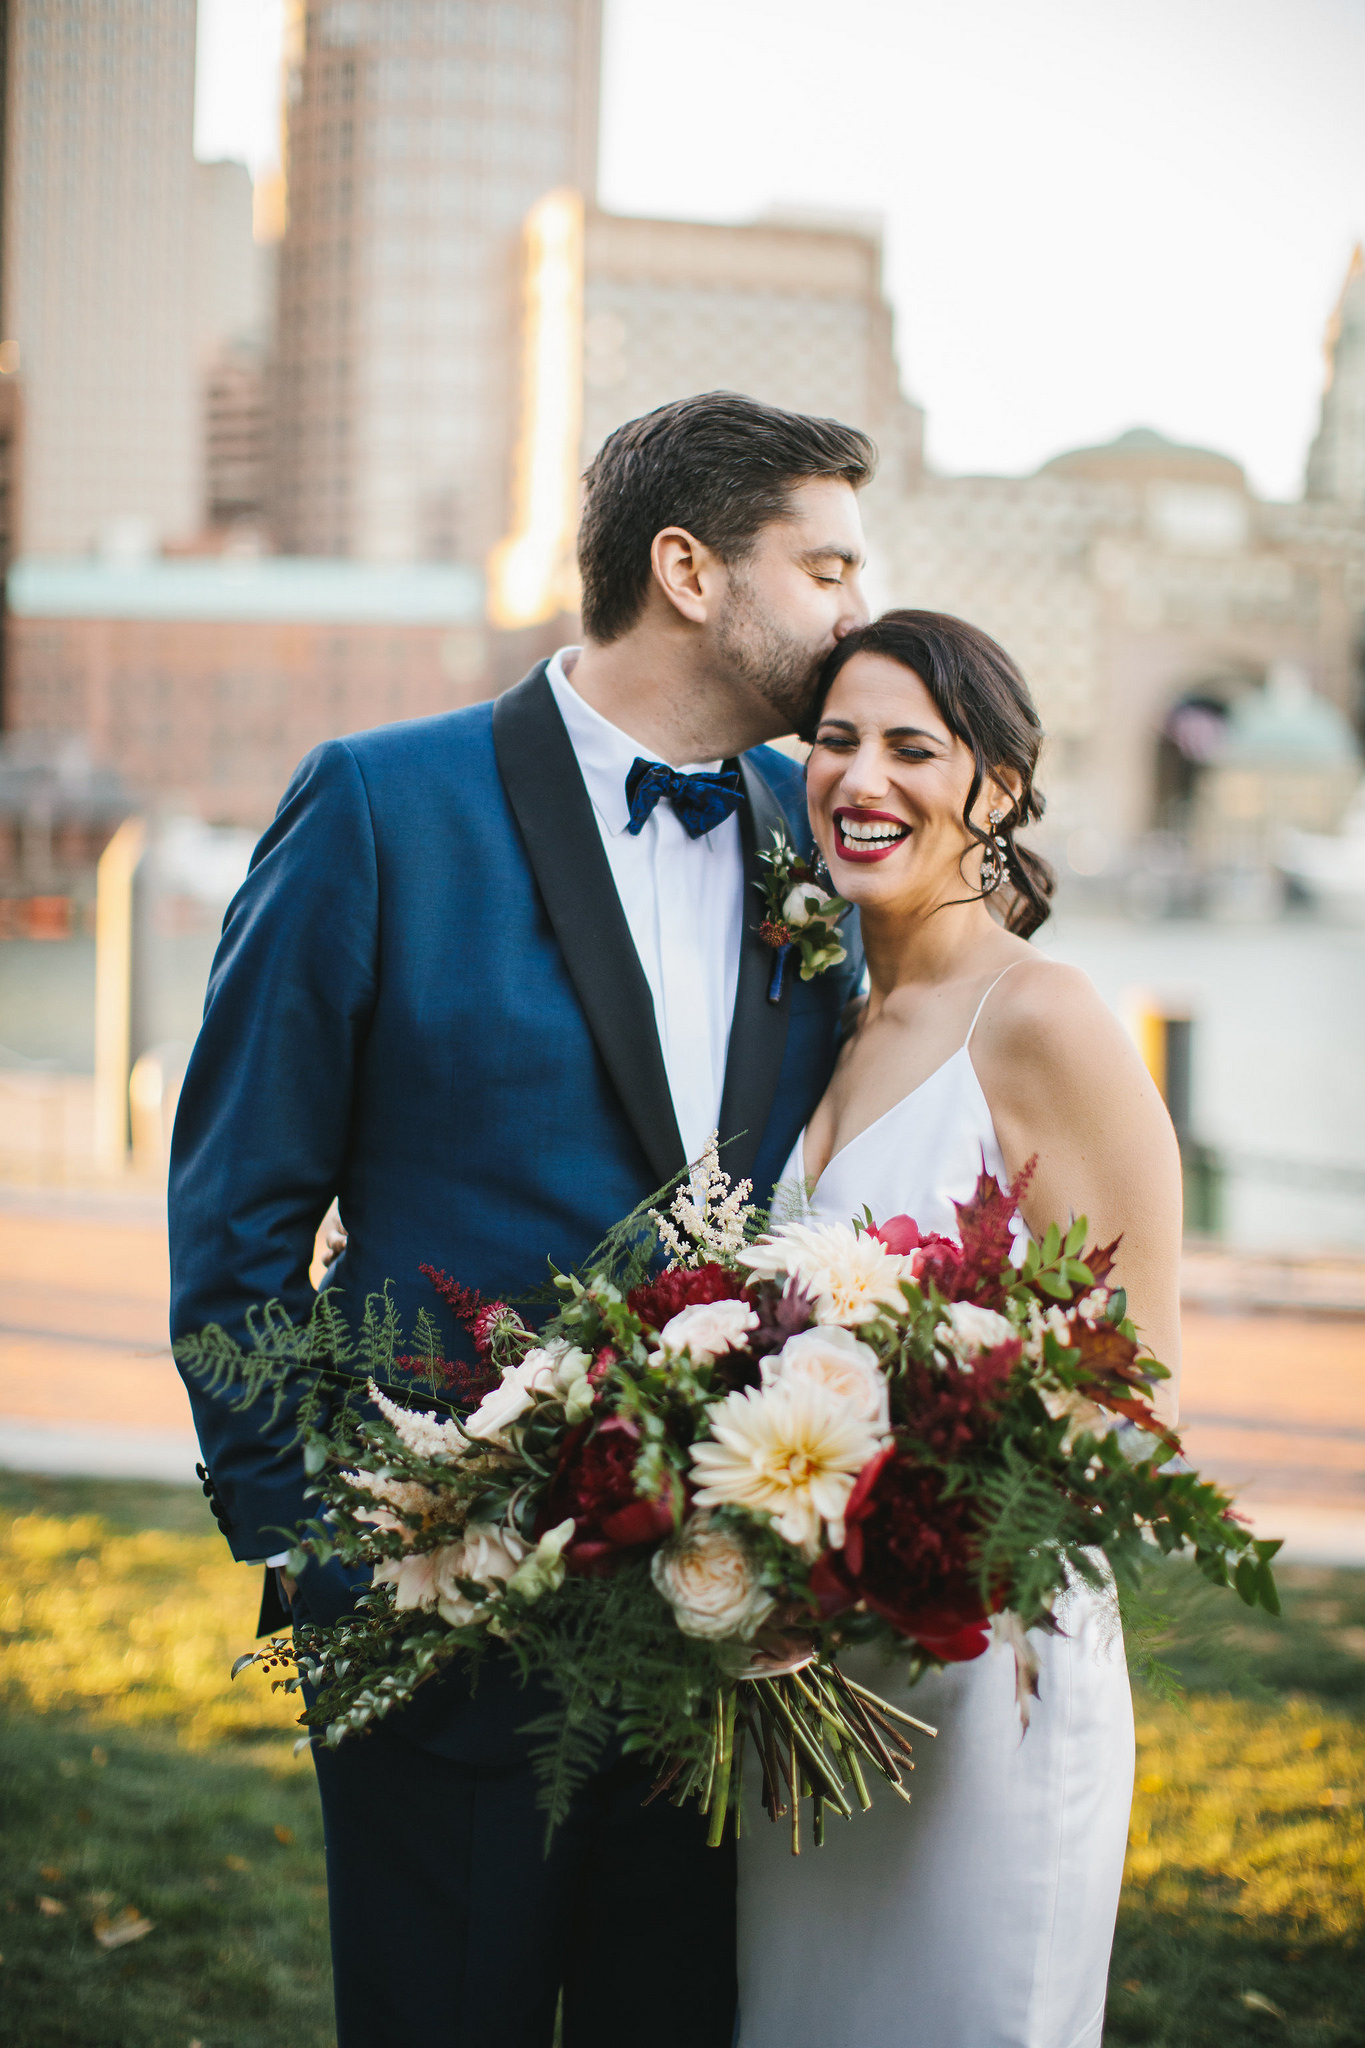 Boston Seaport Bride and Groom Portraits by Lindsay Hite Photography.